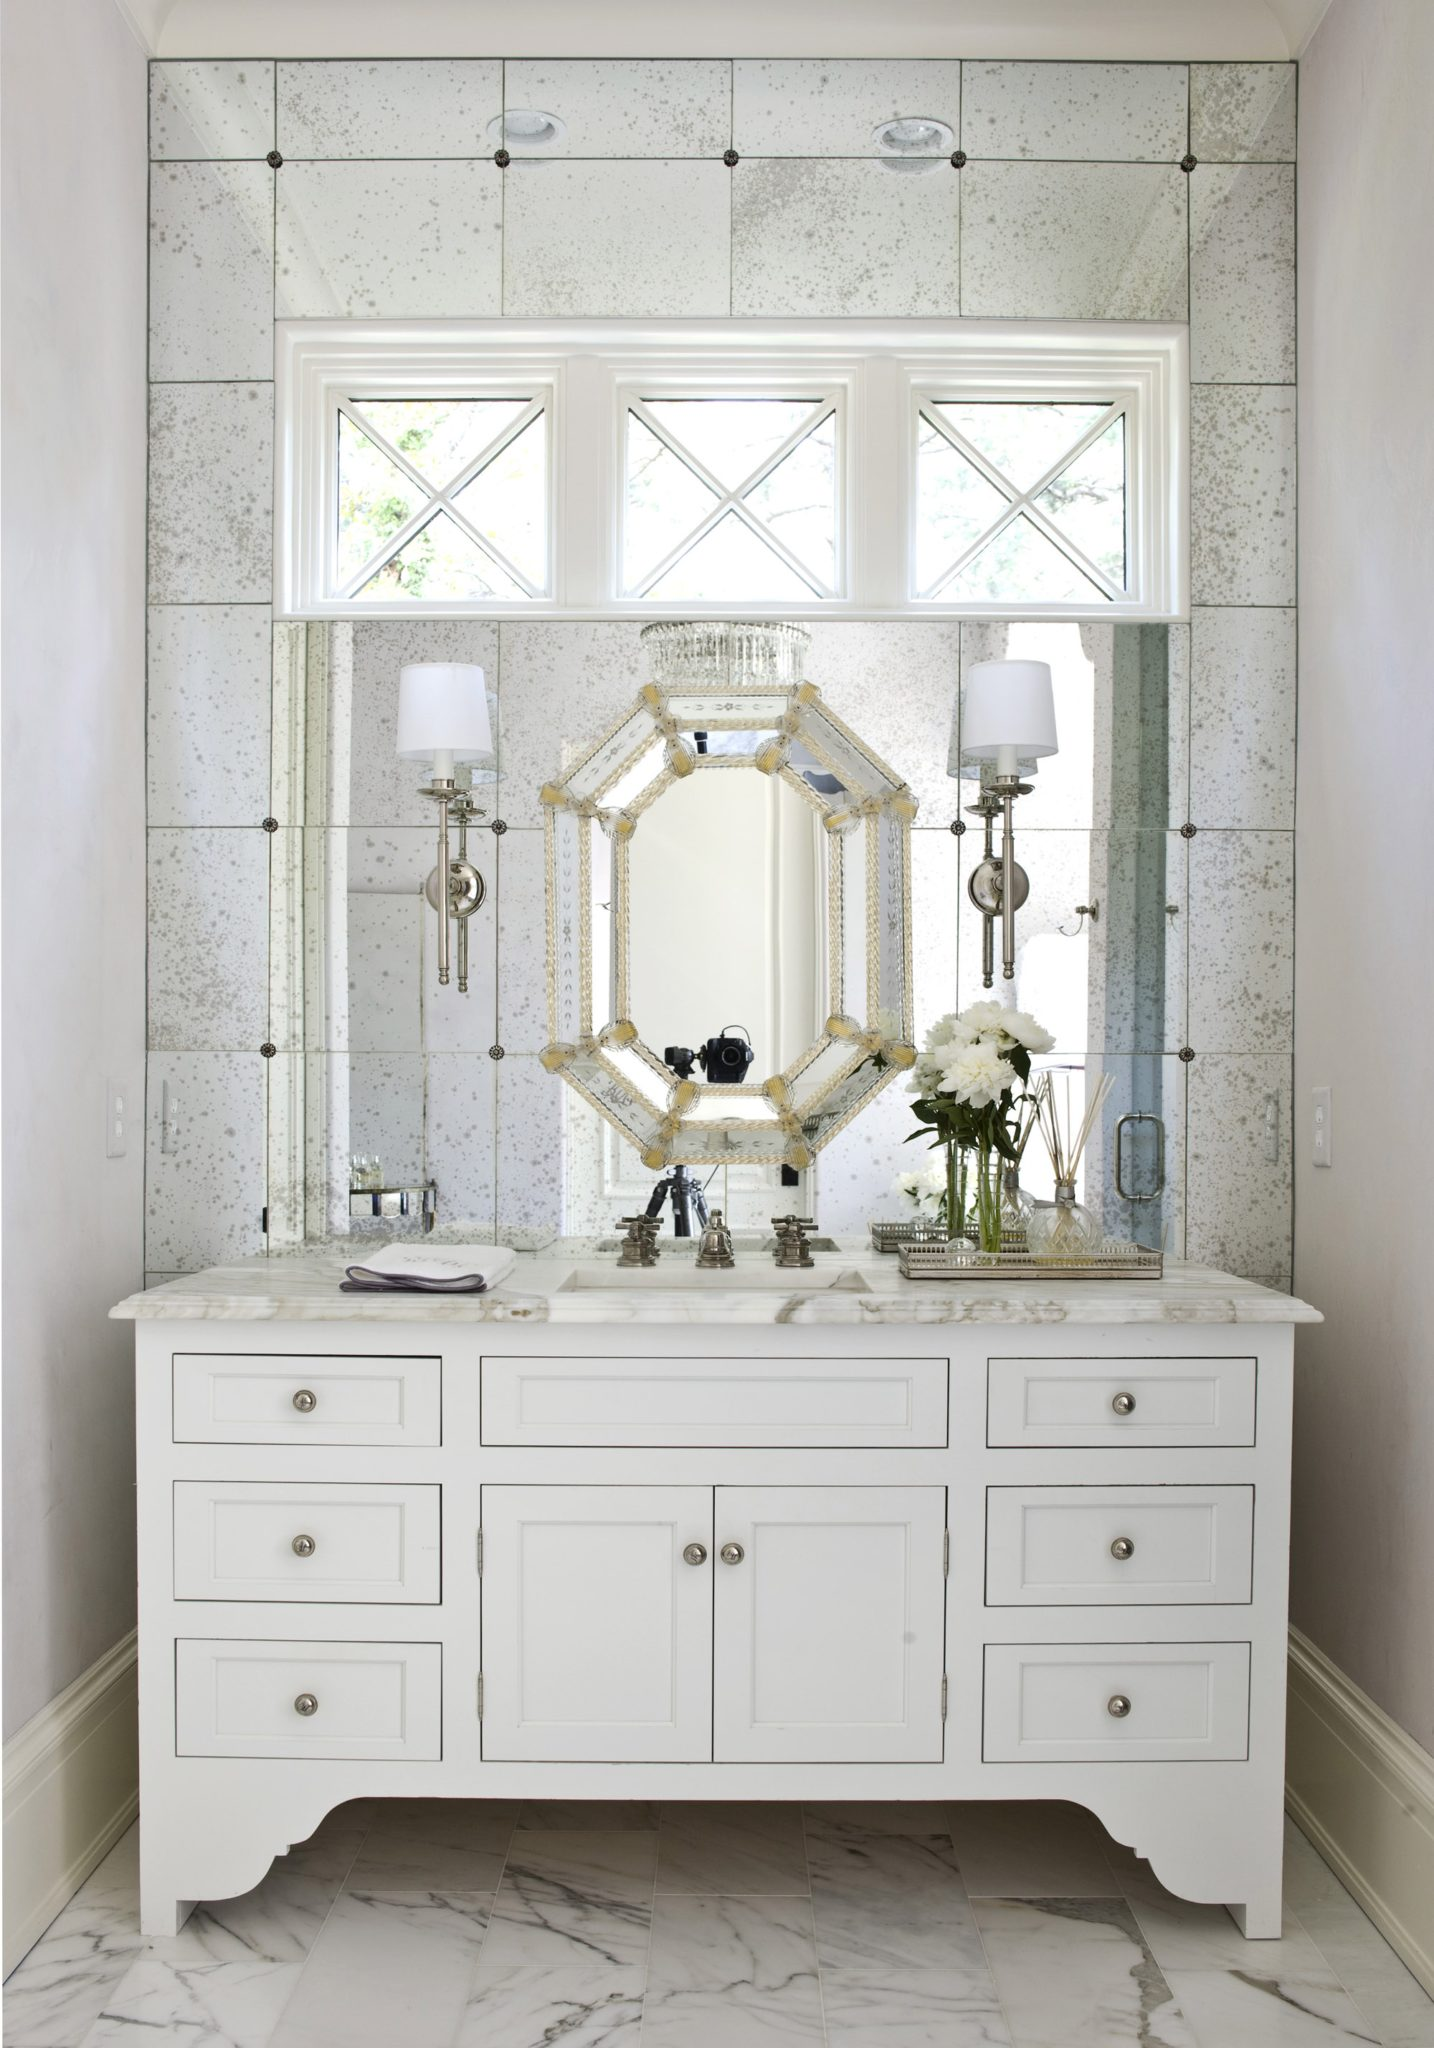 Authentic vanity with mirrored wall by Suzanne Kasler Interiors